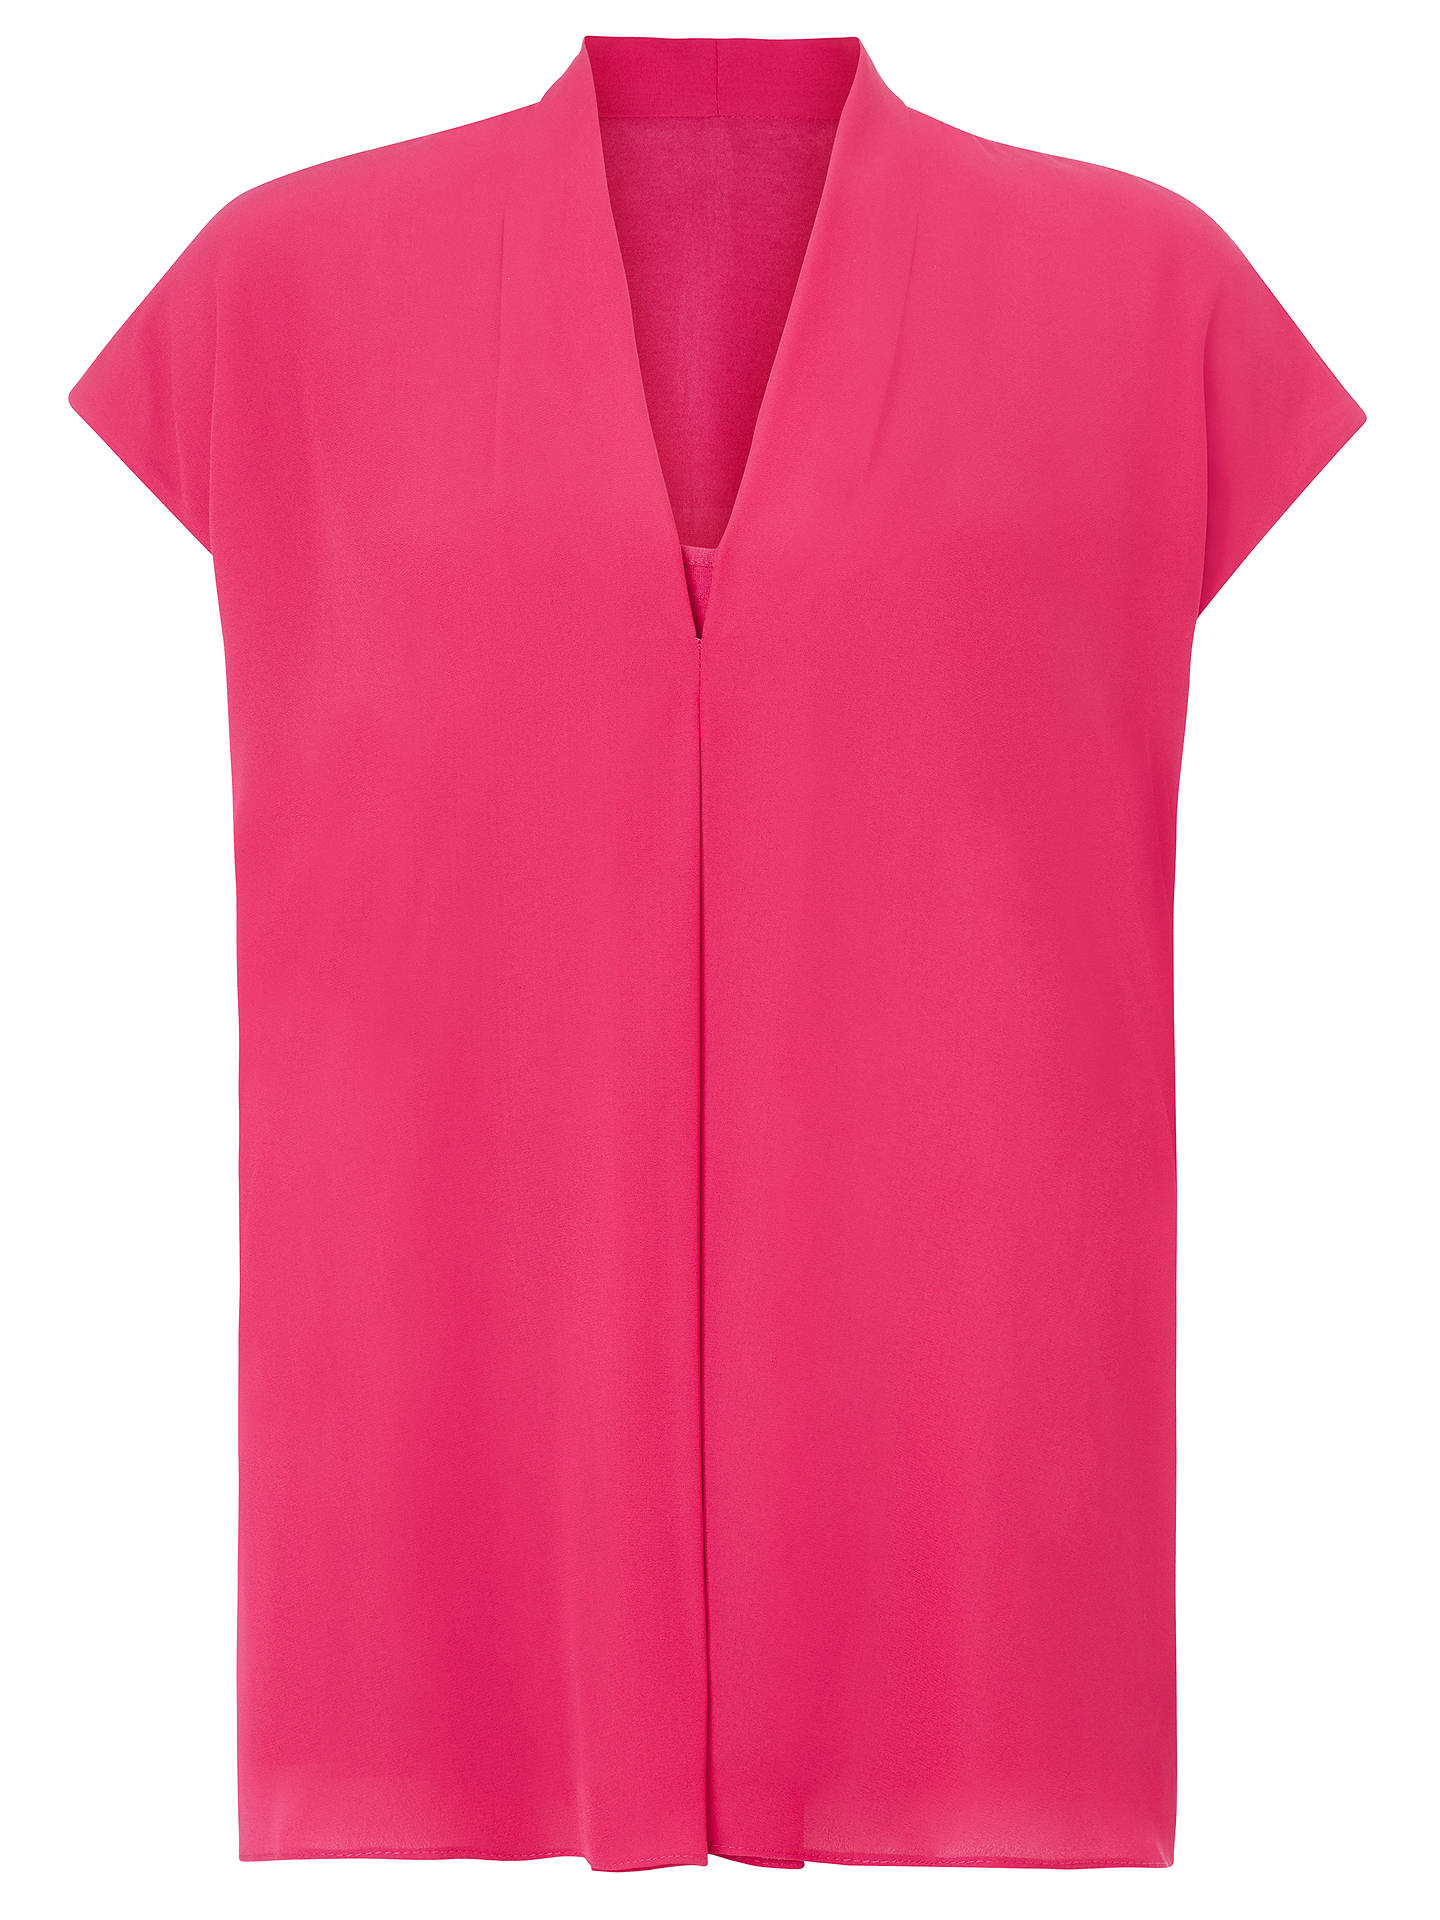 BuyJohn Lewis & Partners Cora Pleat V-Neck Blouse, Bright Pink, 8 Online at johnlewis.com